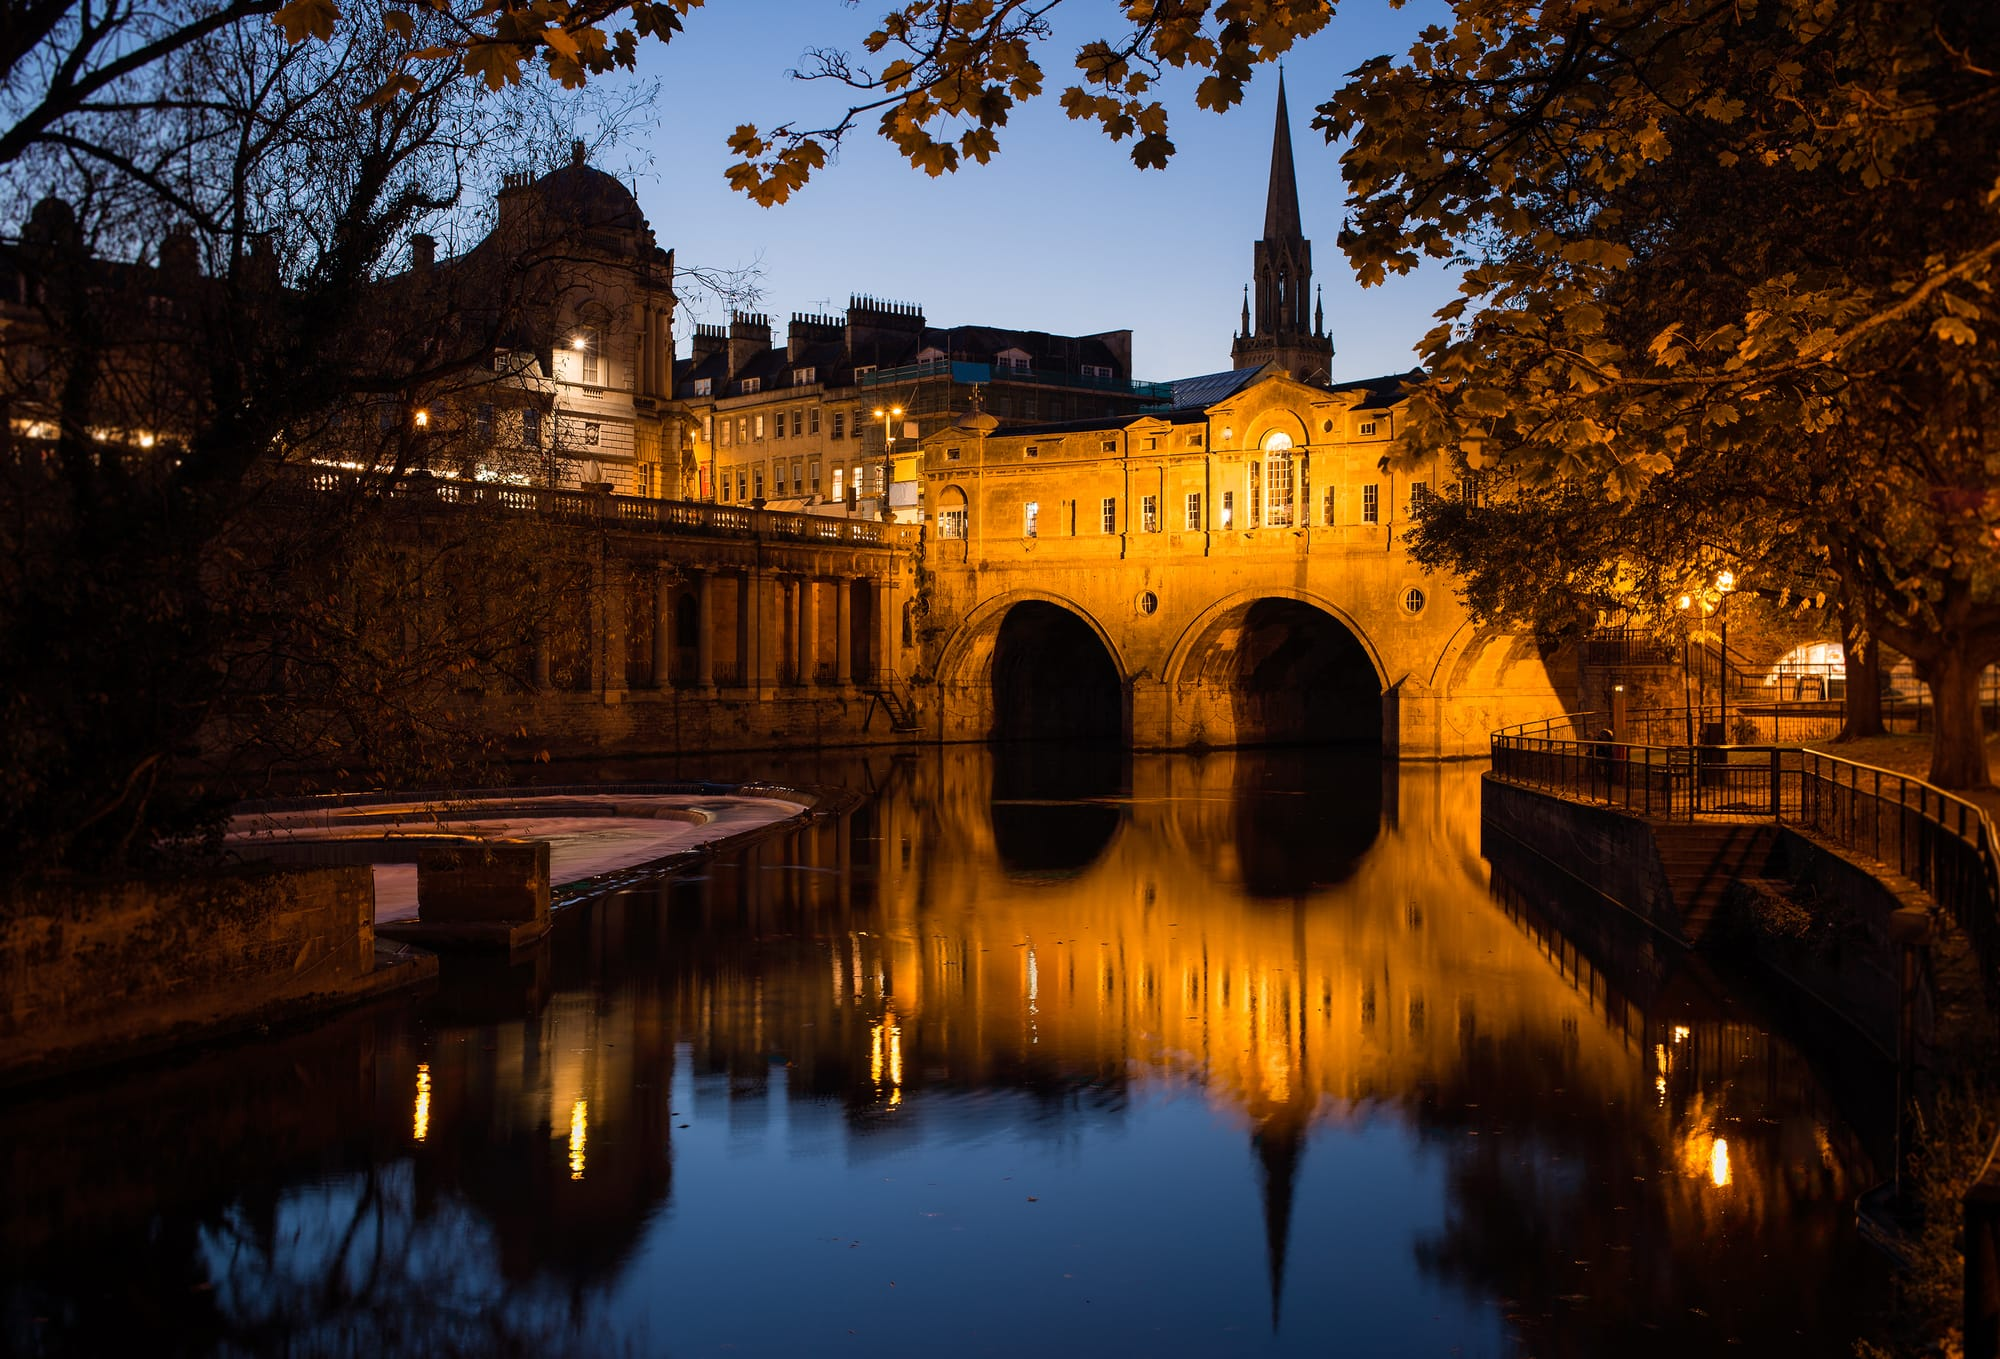 Night time view of Pulteney Bridge in Bath, England, UK